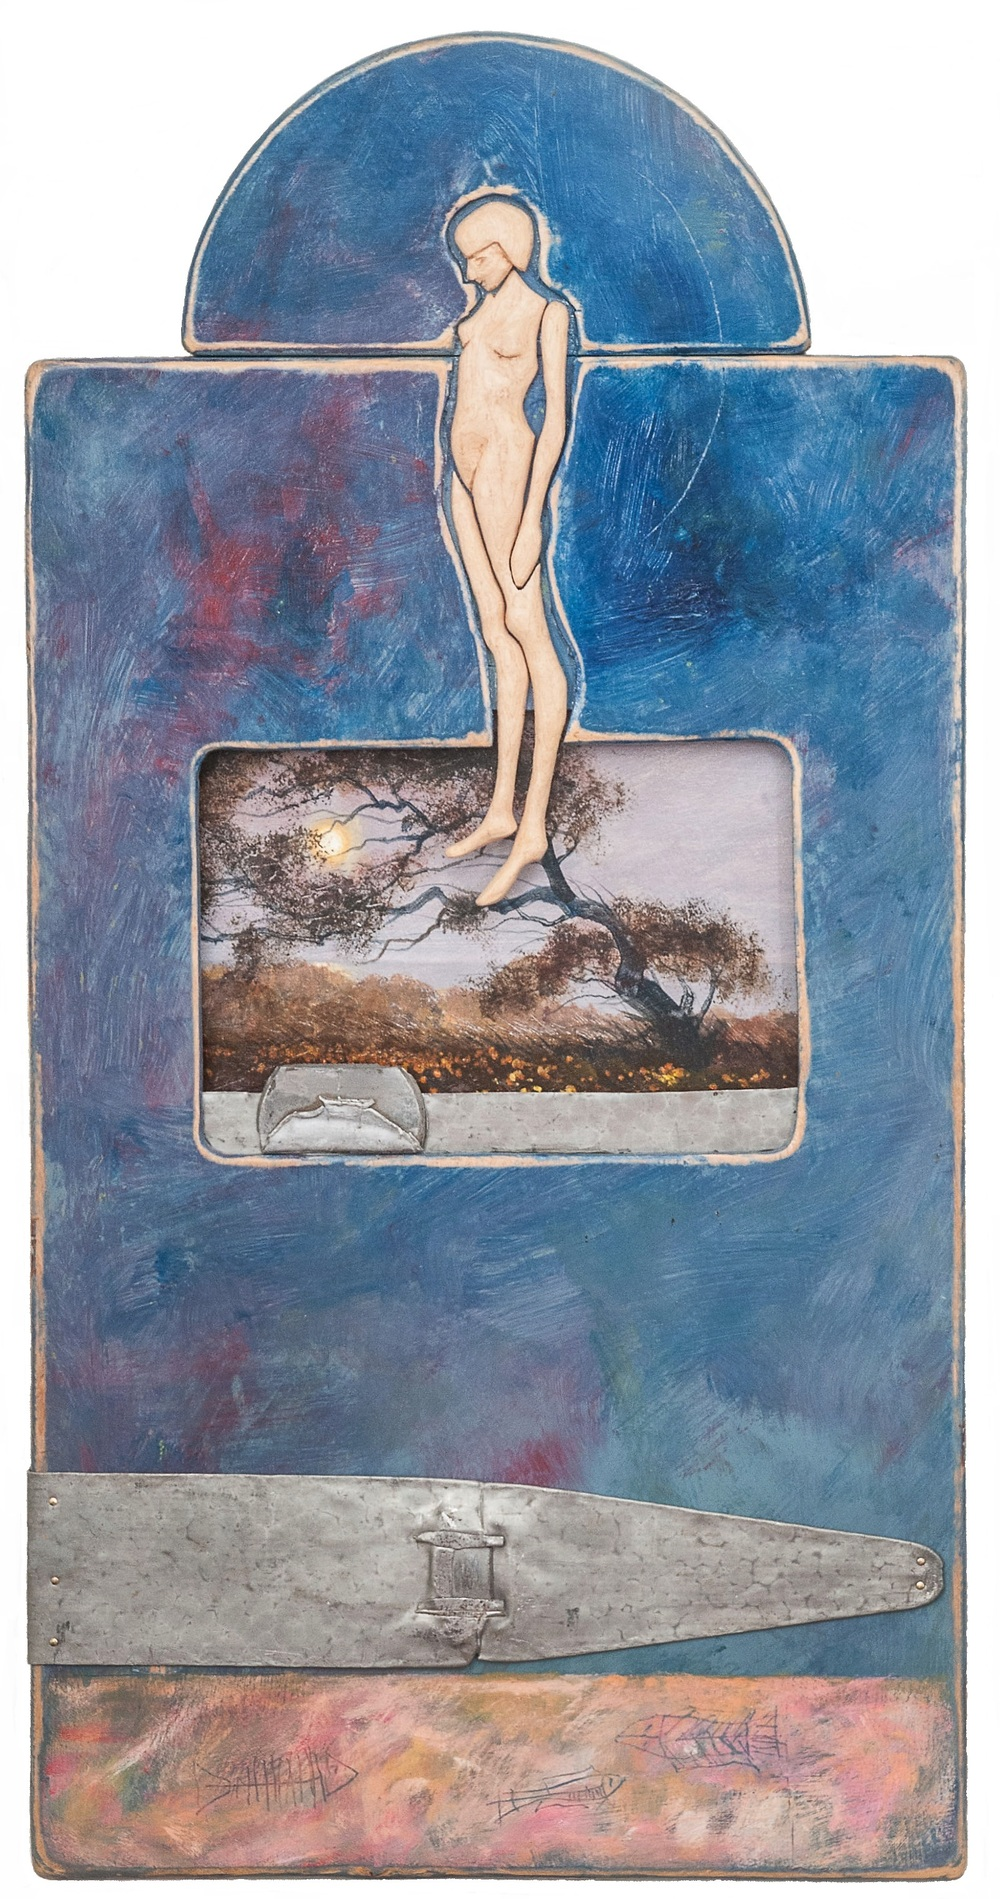 Keen_Billy_L_OLD_GENESIS_31-5x16x2_Acrylic_Mixed_Media_on_WoodLKCROP.jpg